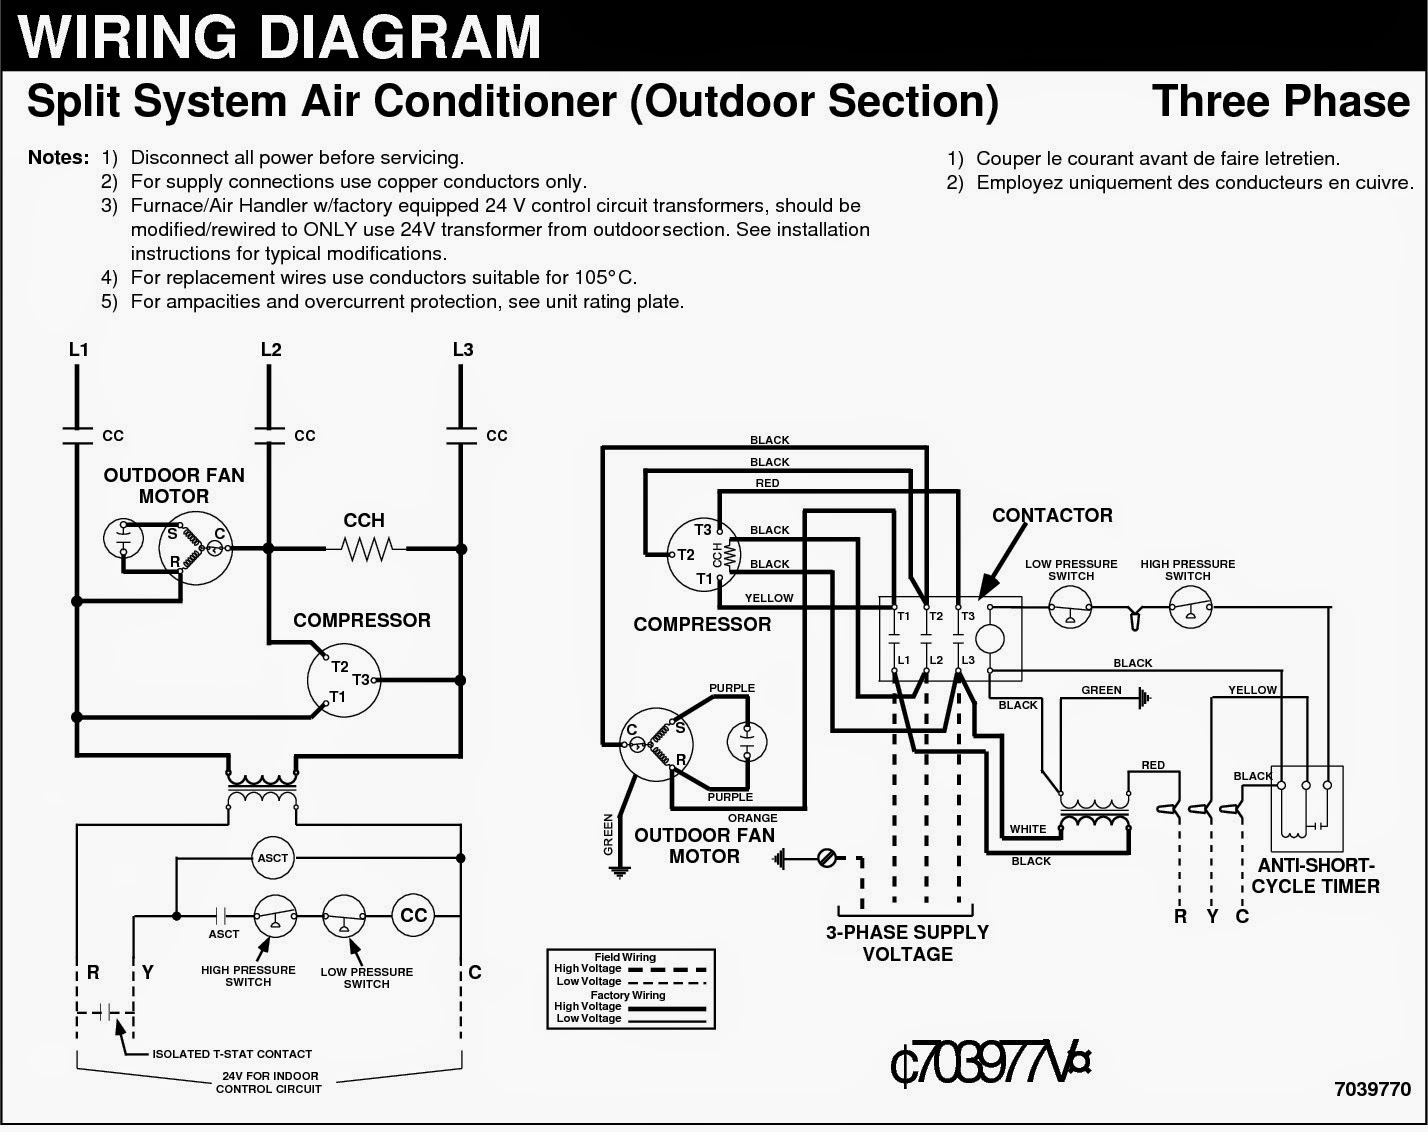 Daewoo Engine Diagrams Diy Enthusiasts Wiring Electrical For Air Conditioning Systems Part Two Knowhow Problems